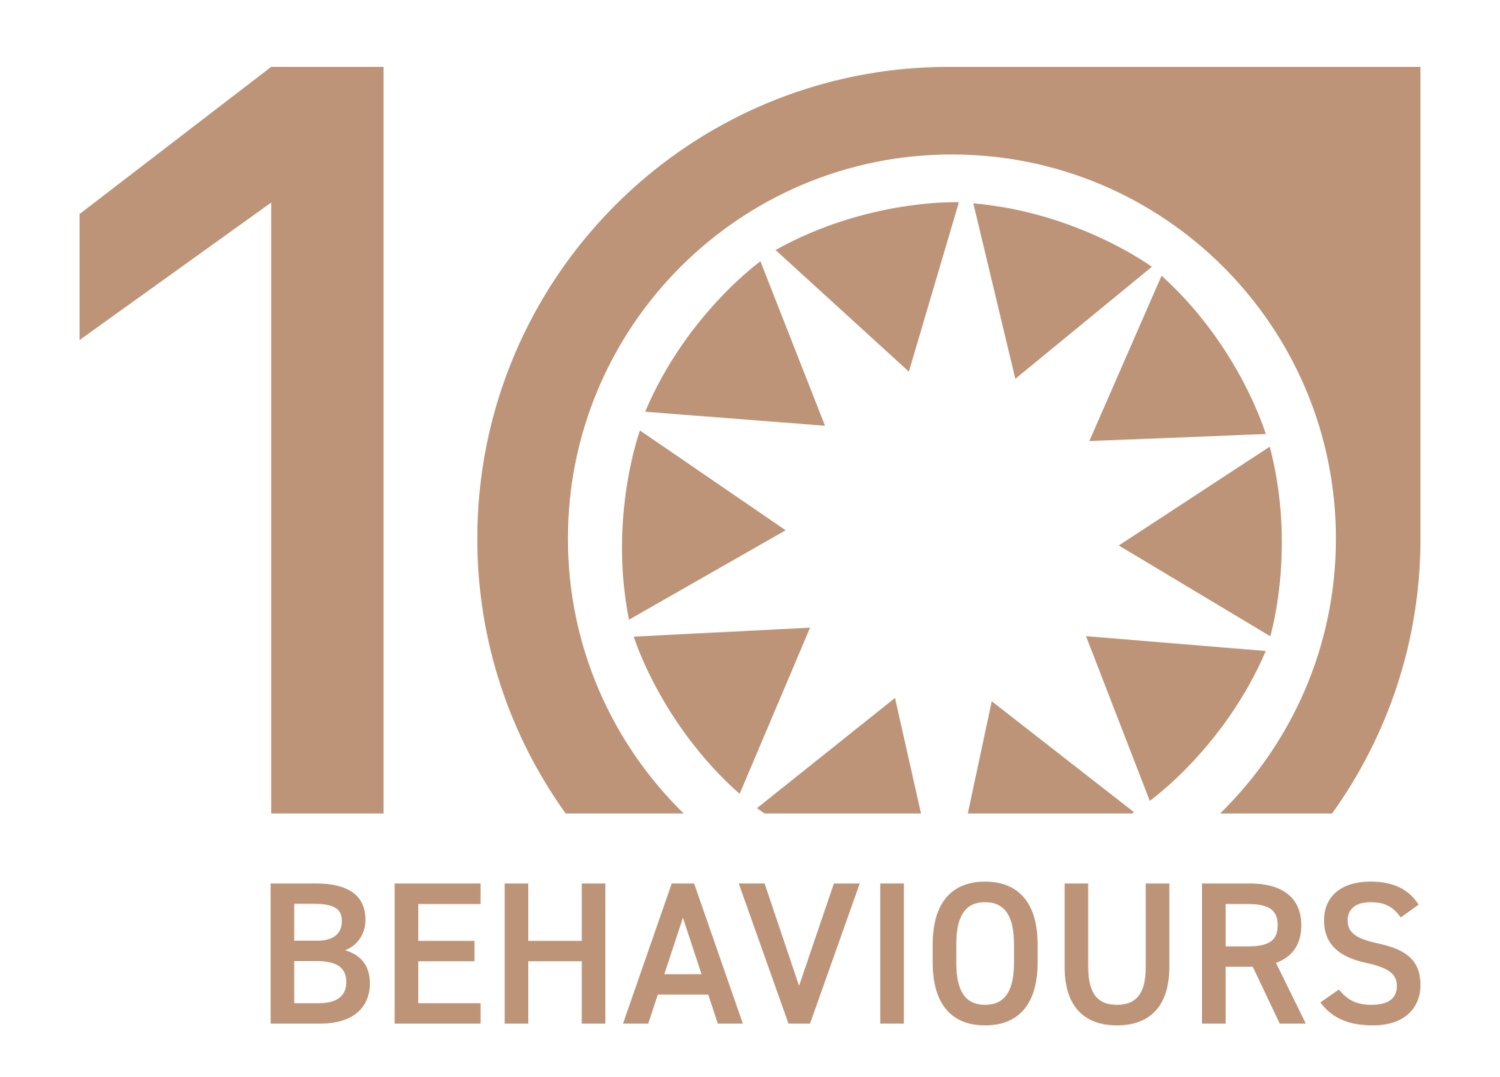 THE 10 BEHAVIOURS